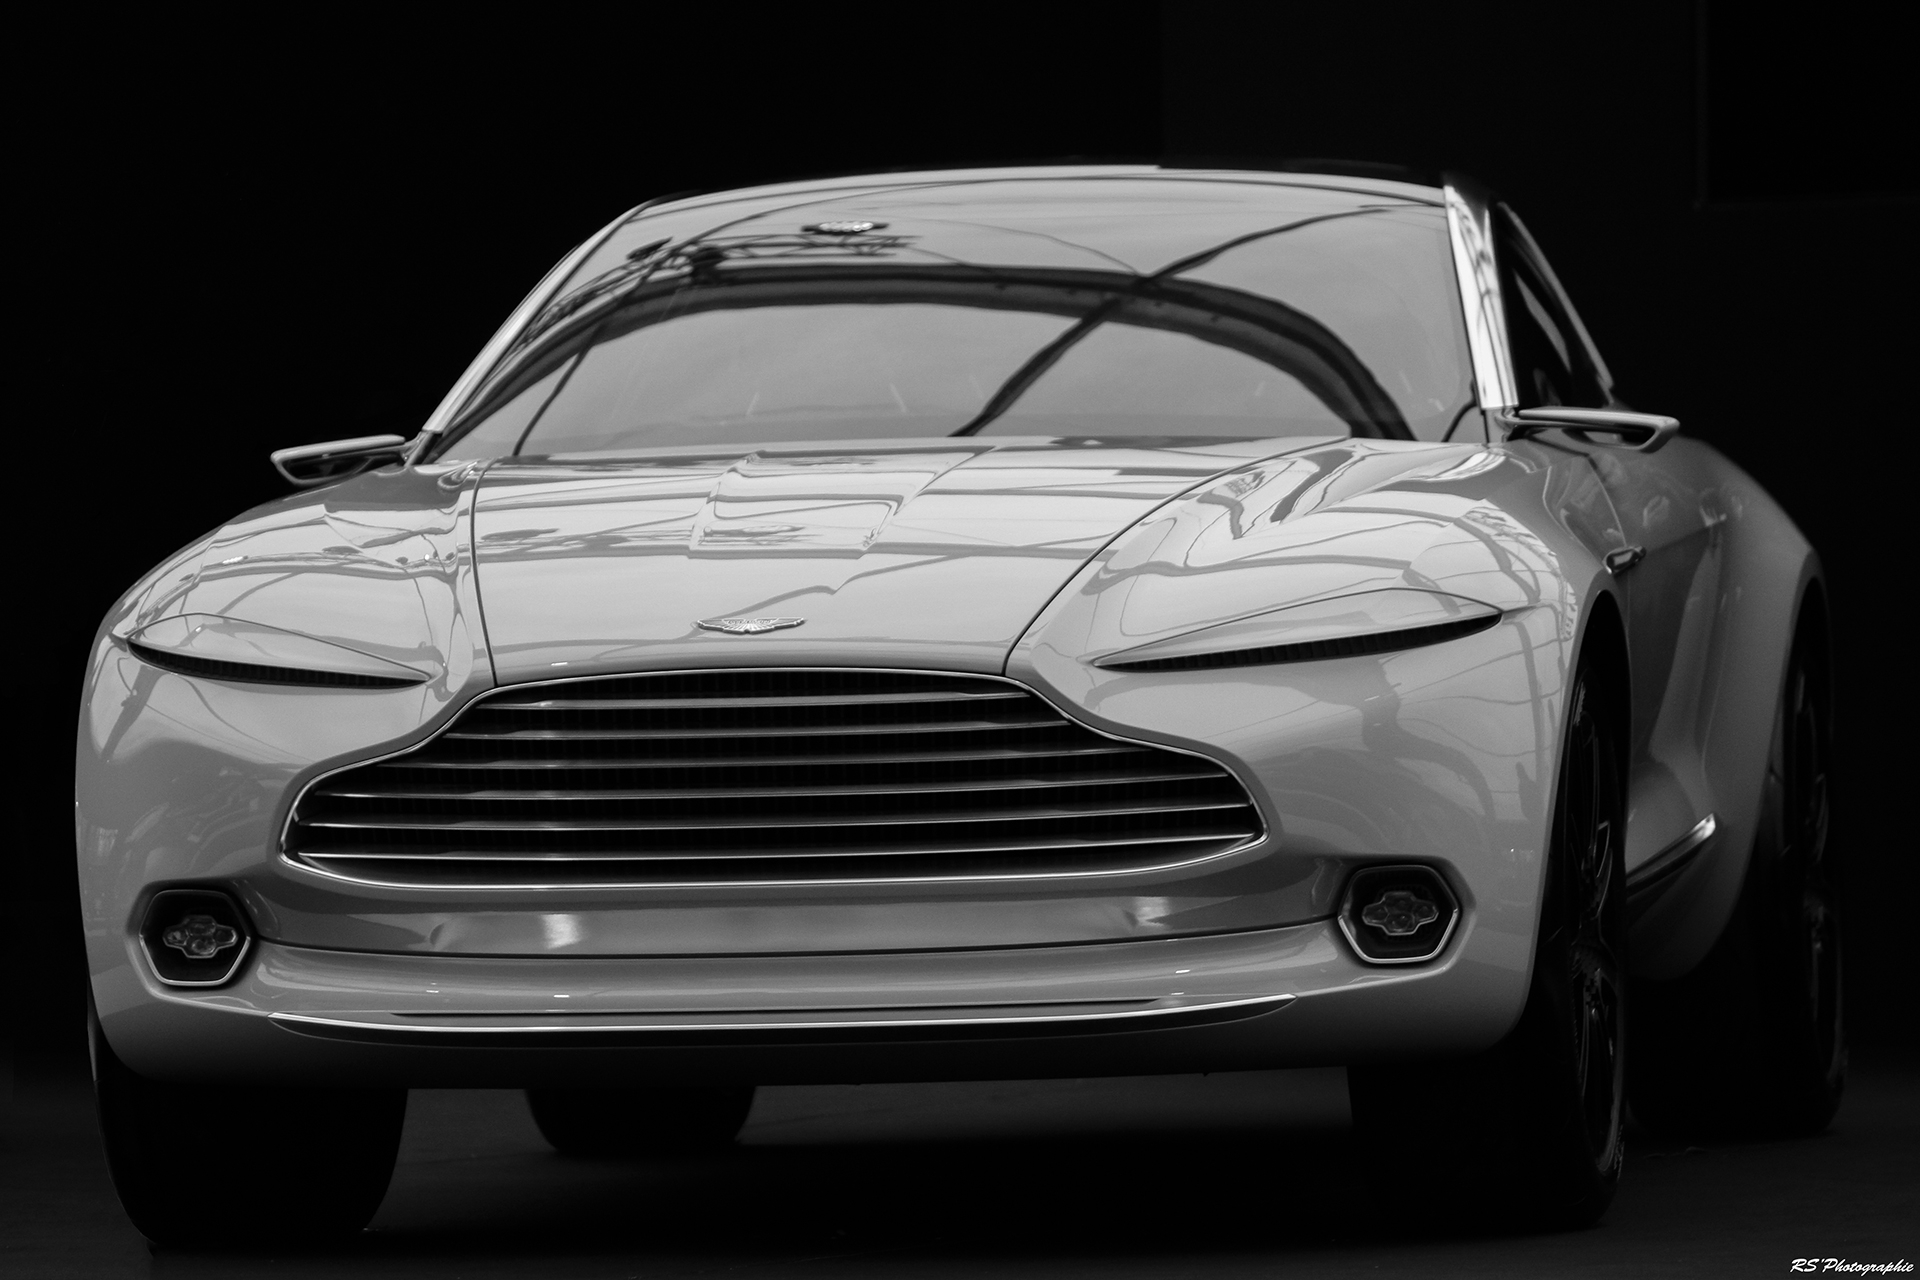 Aston Martin DBX Concept - Exposition Concept cars 2016 - Arnaud Demasier RS Photographie